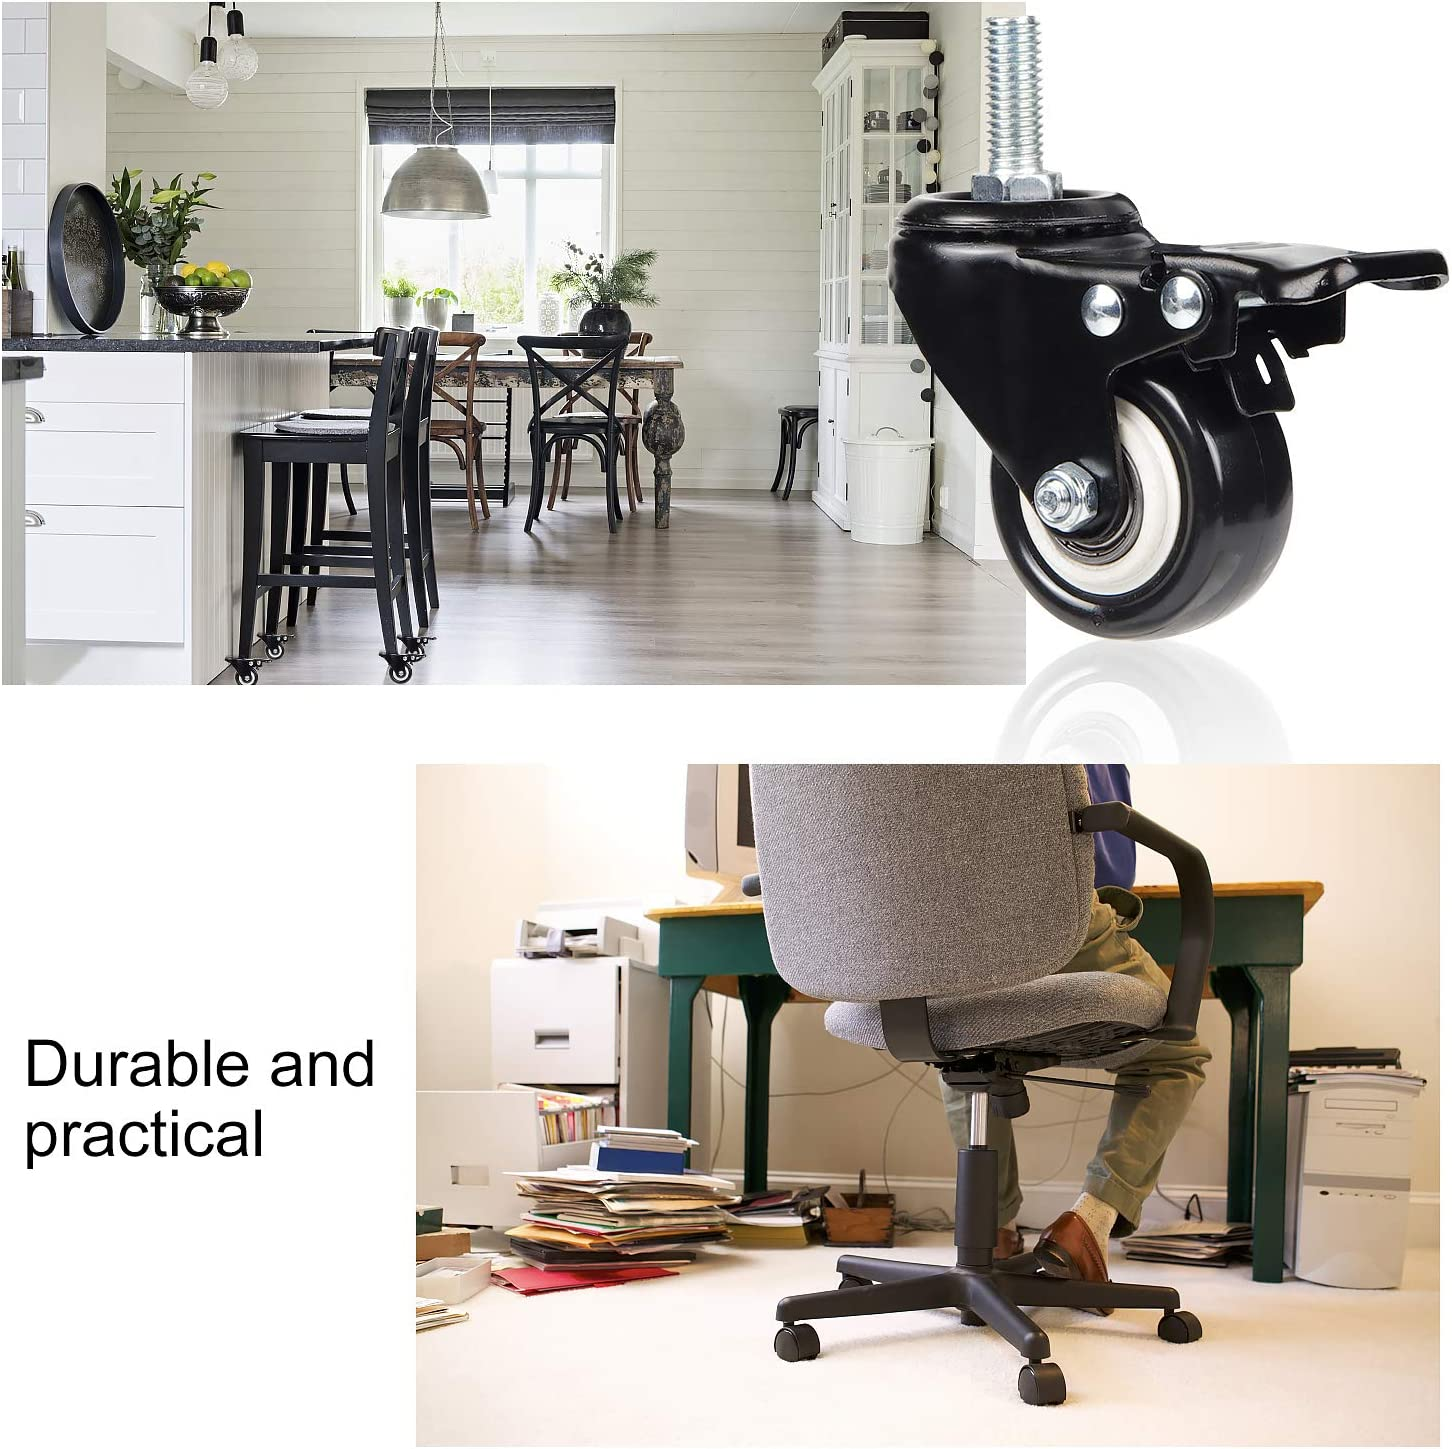 AMIGOB 4 pcs Castpr Wheels 50mm Heavy Duty Rubber Swivel Industrial Caster with Brakes Moving Caster Wheels